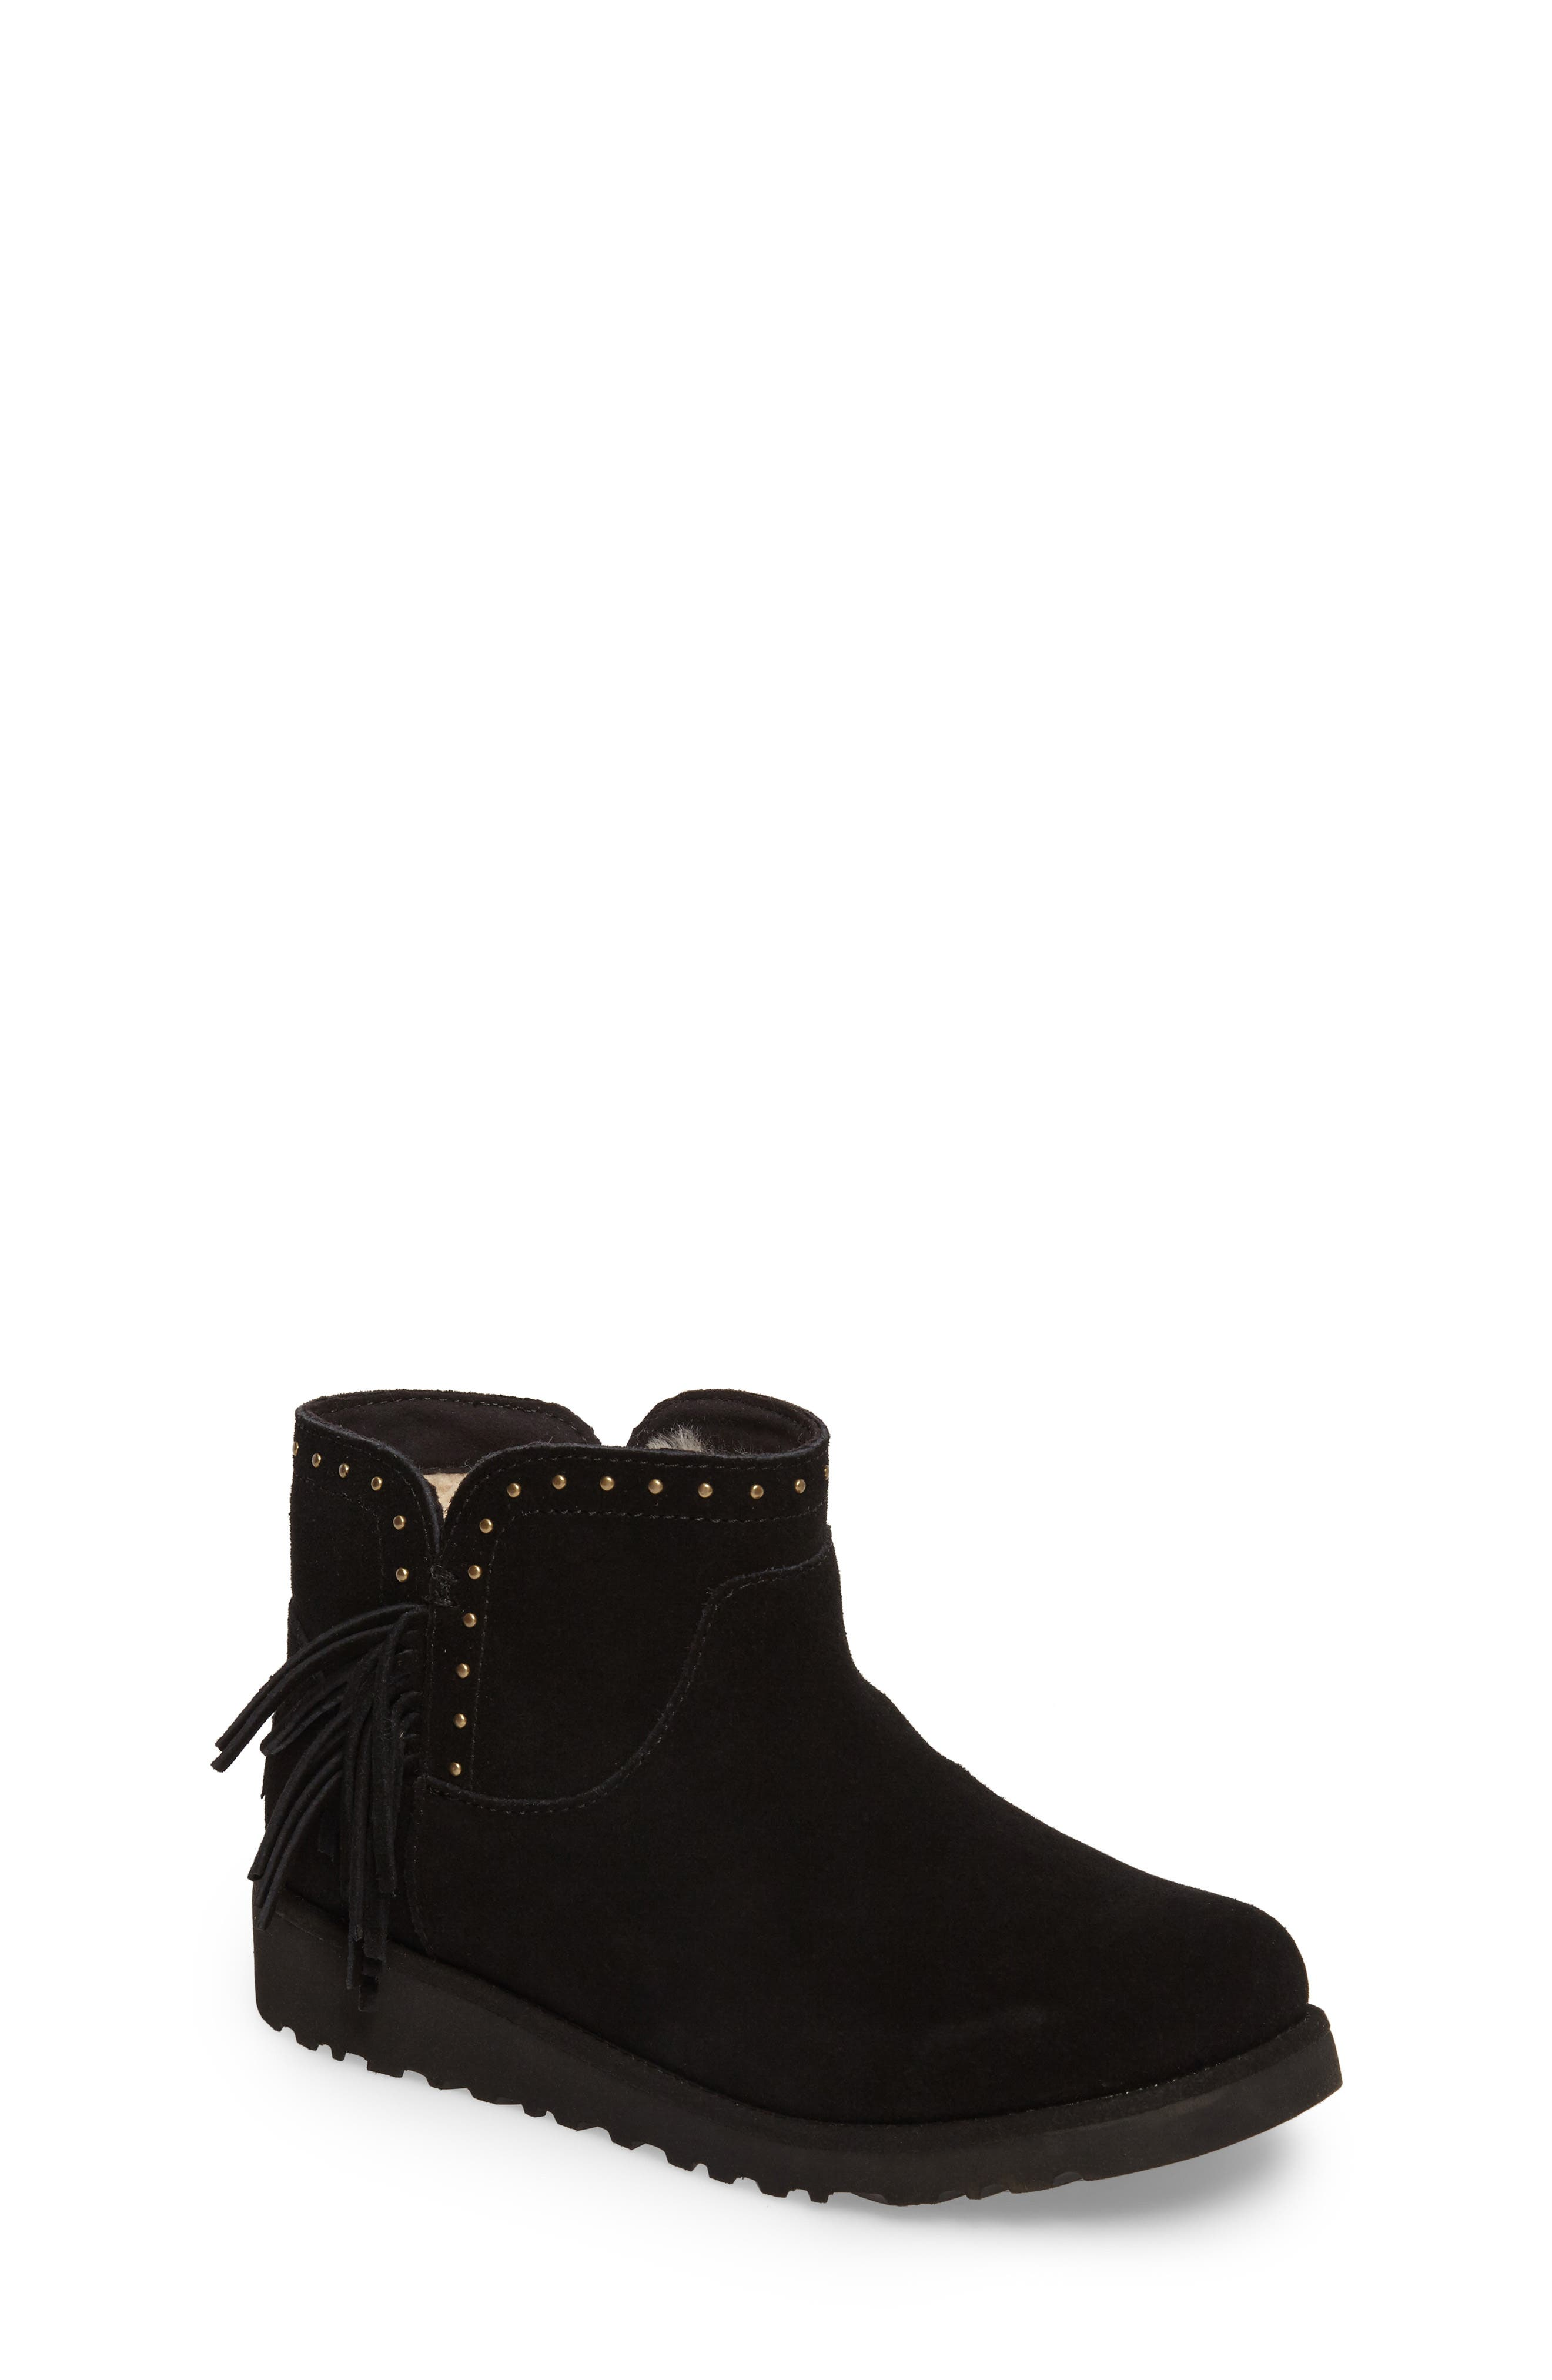 Cindy Water-Resistant Genuine Shearling Studded Bootie,                         Main,                         color, 001